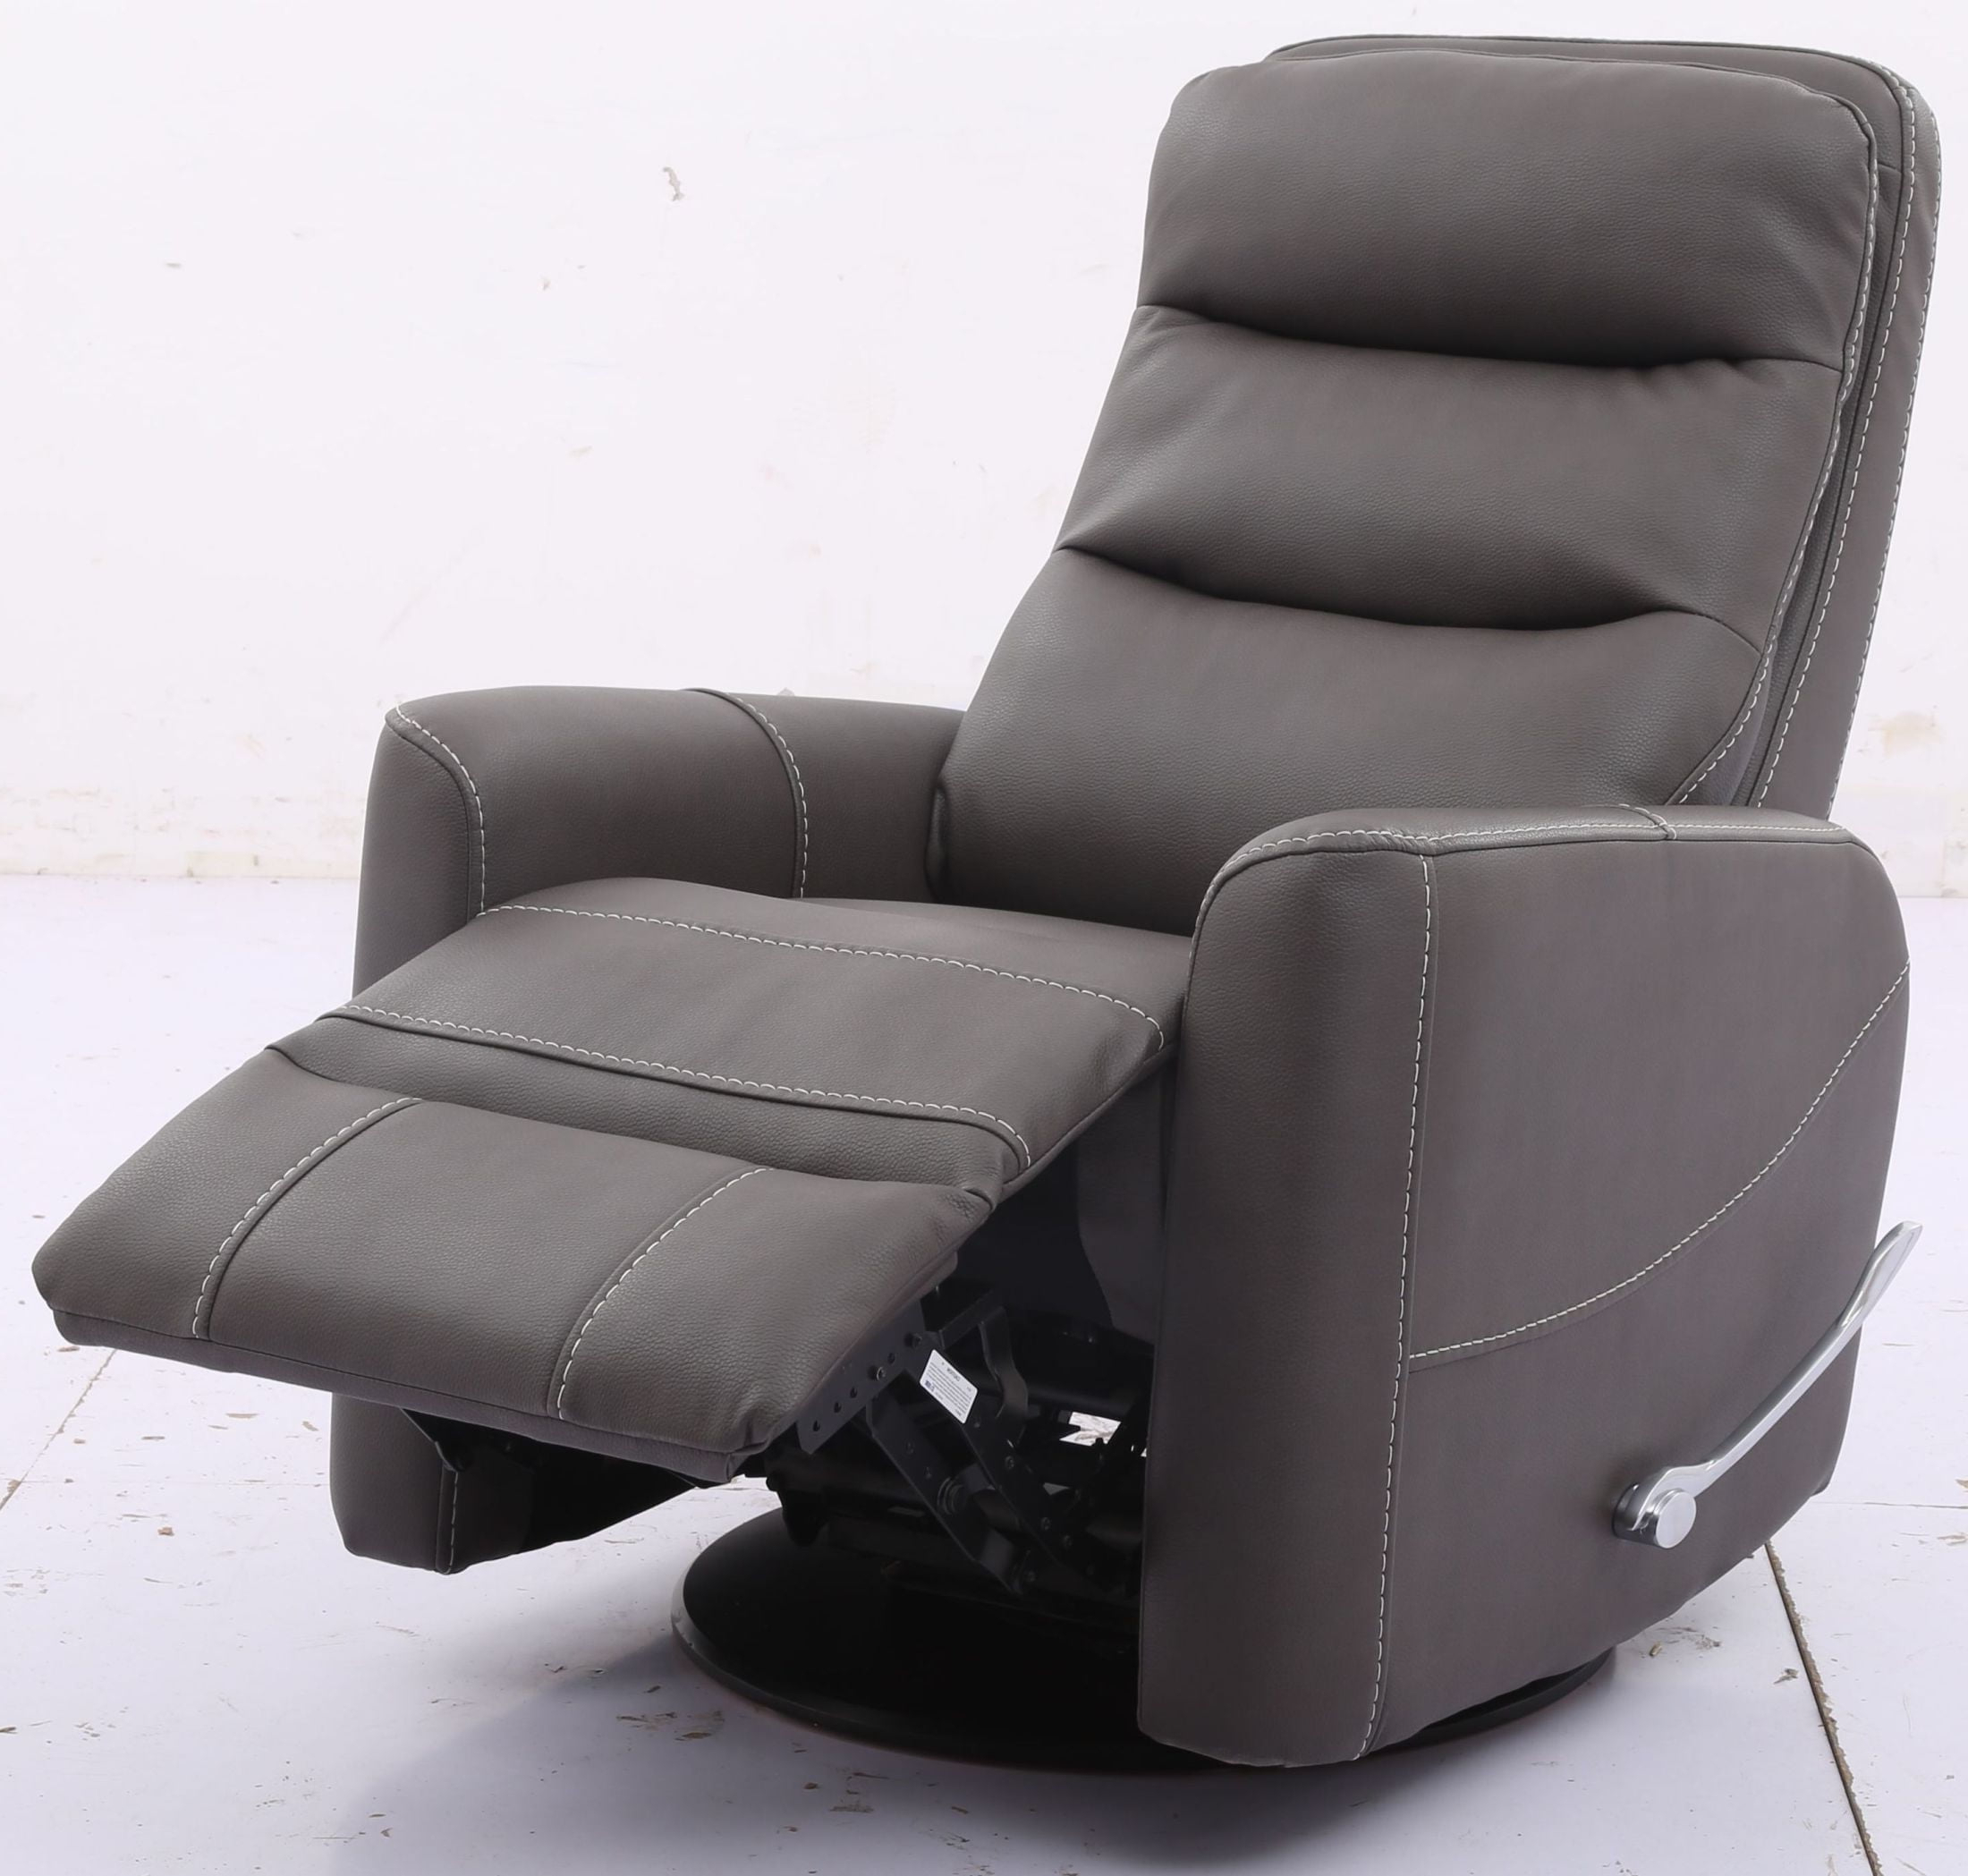 Popular Hercules Haze Swivel Glider Recliner With Articulating Headrest From Pertaining To Hercules Grey Swivel Glider Recliners (View 14 of 20)